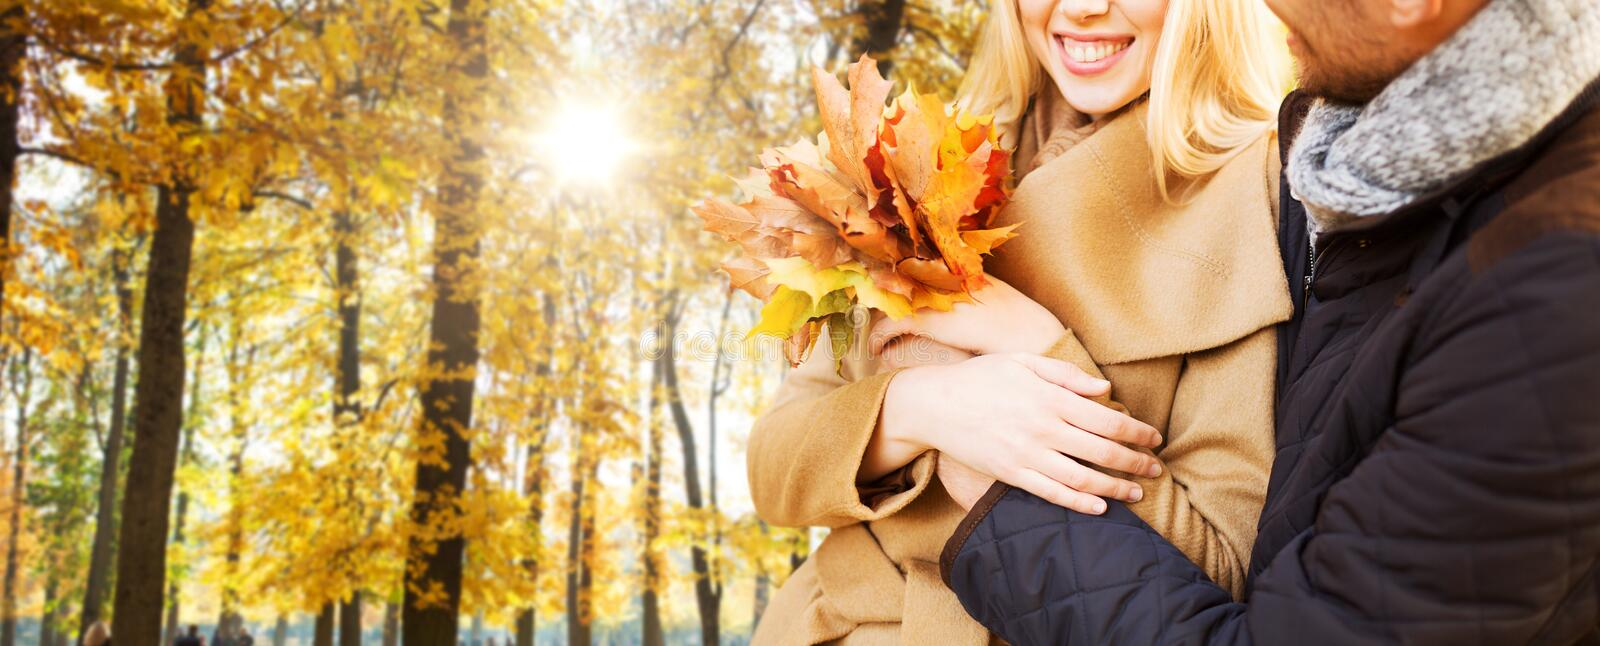 Close up of smiling couple hugging in autumn park royalty free stock images